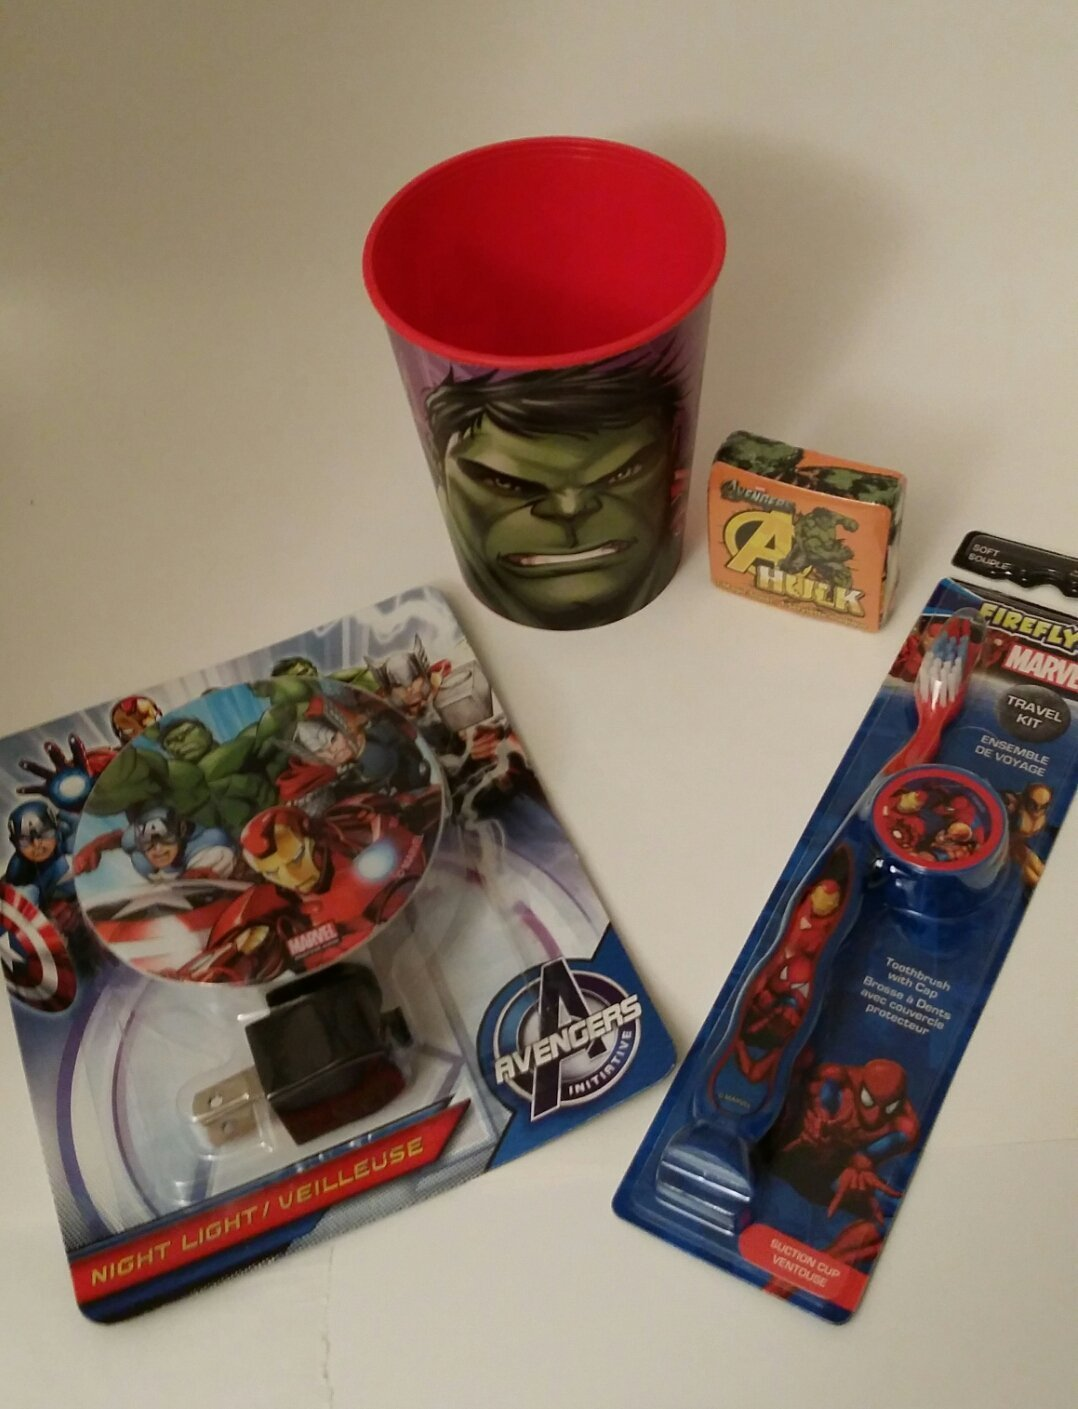 4 Piece Avengers bath bundle Avengers nightlight Avengers Toothbrush Avengers Cup Avengers Hulk washcloth